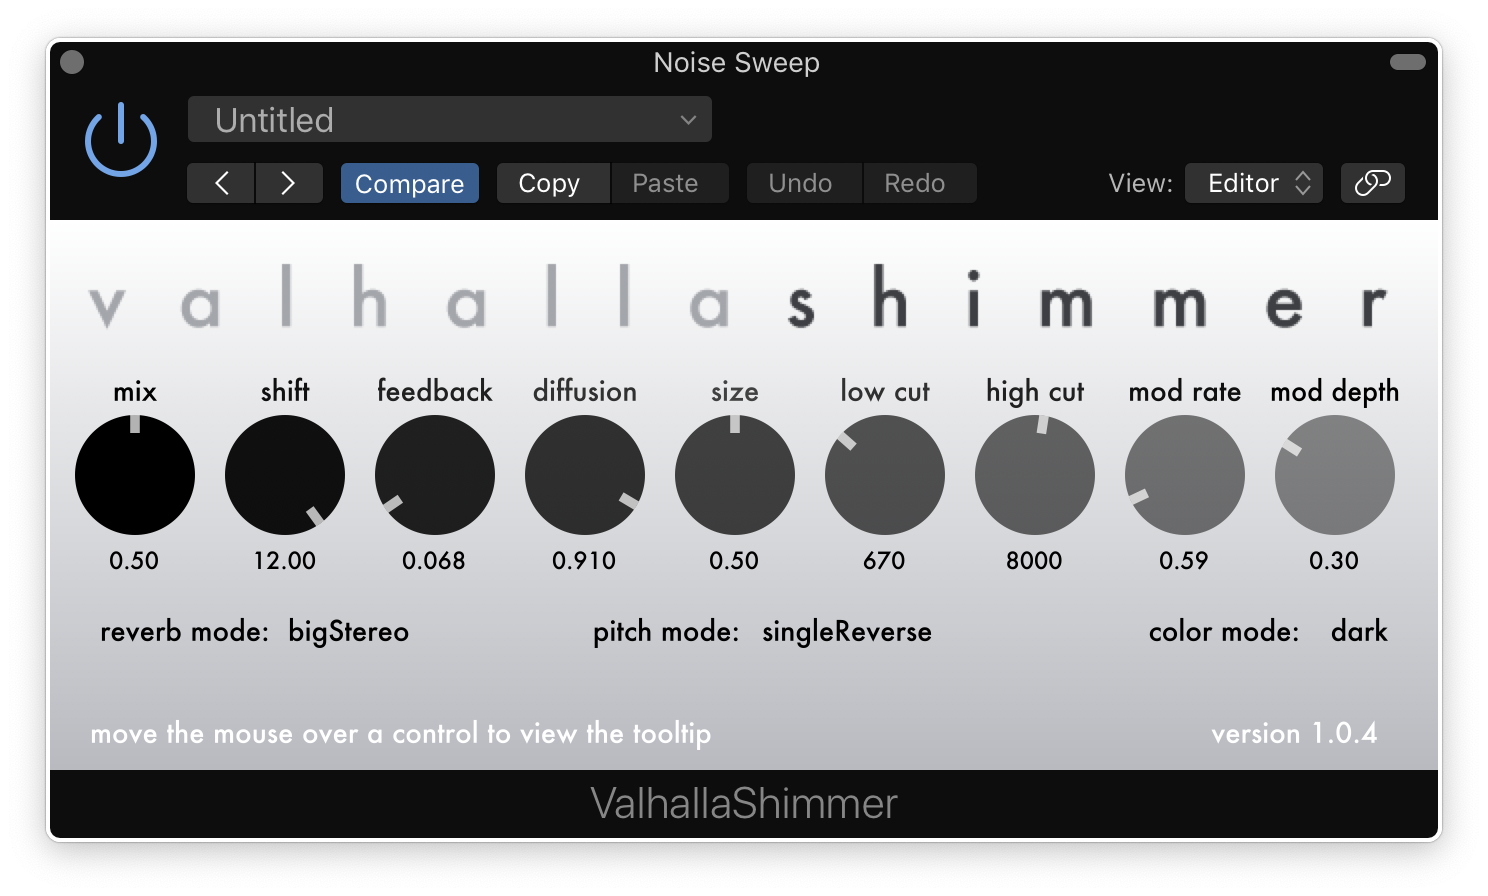 Valhalla DSP can always be relied upon to produce top-notch plugins that are affordable and easy to use.